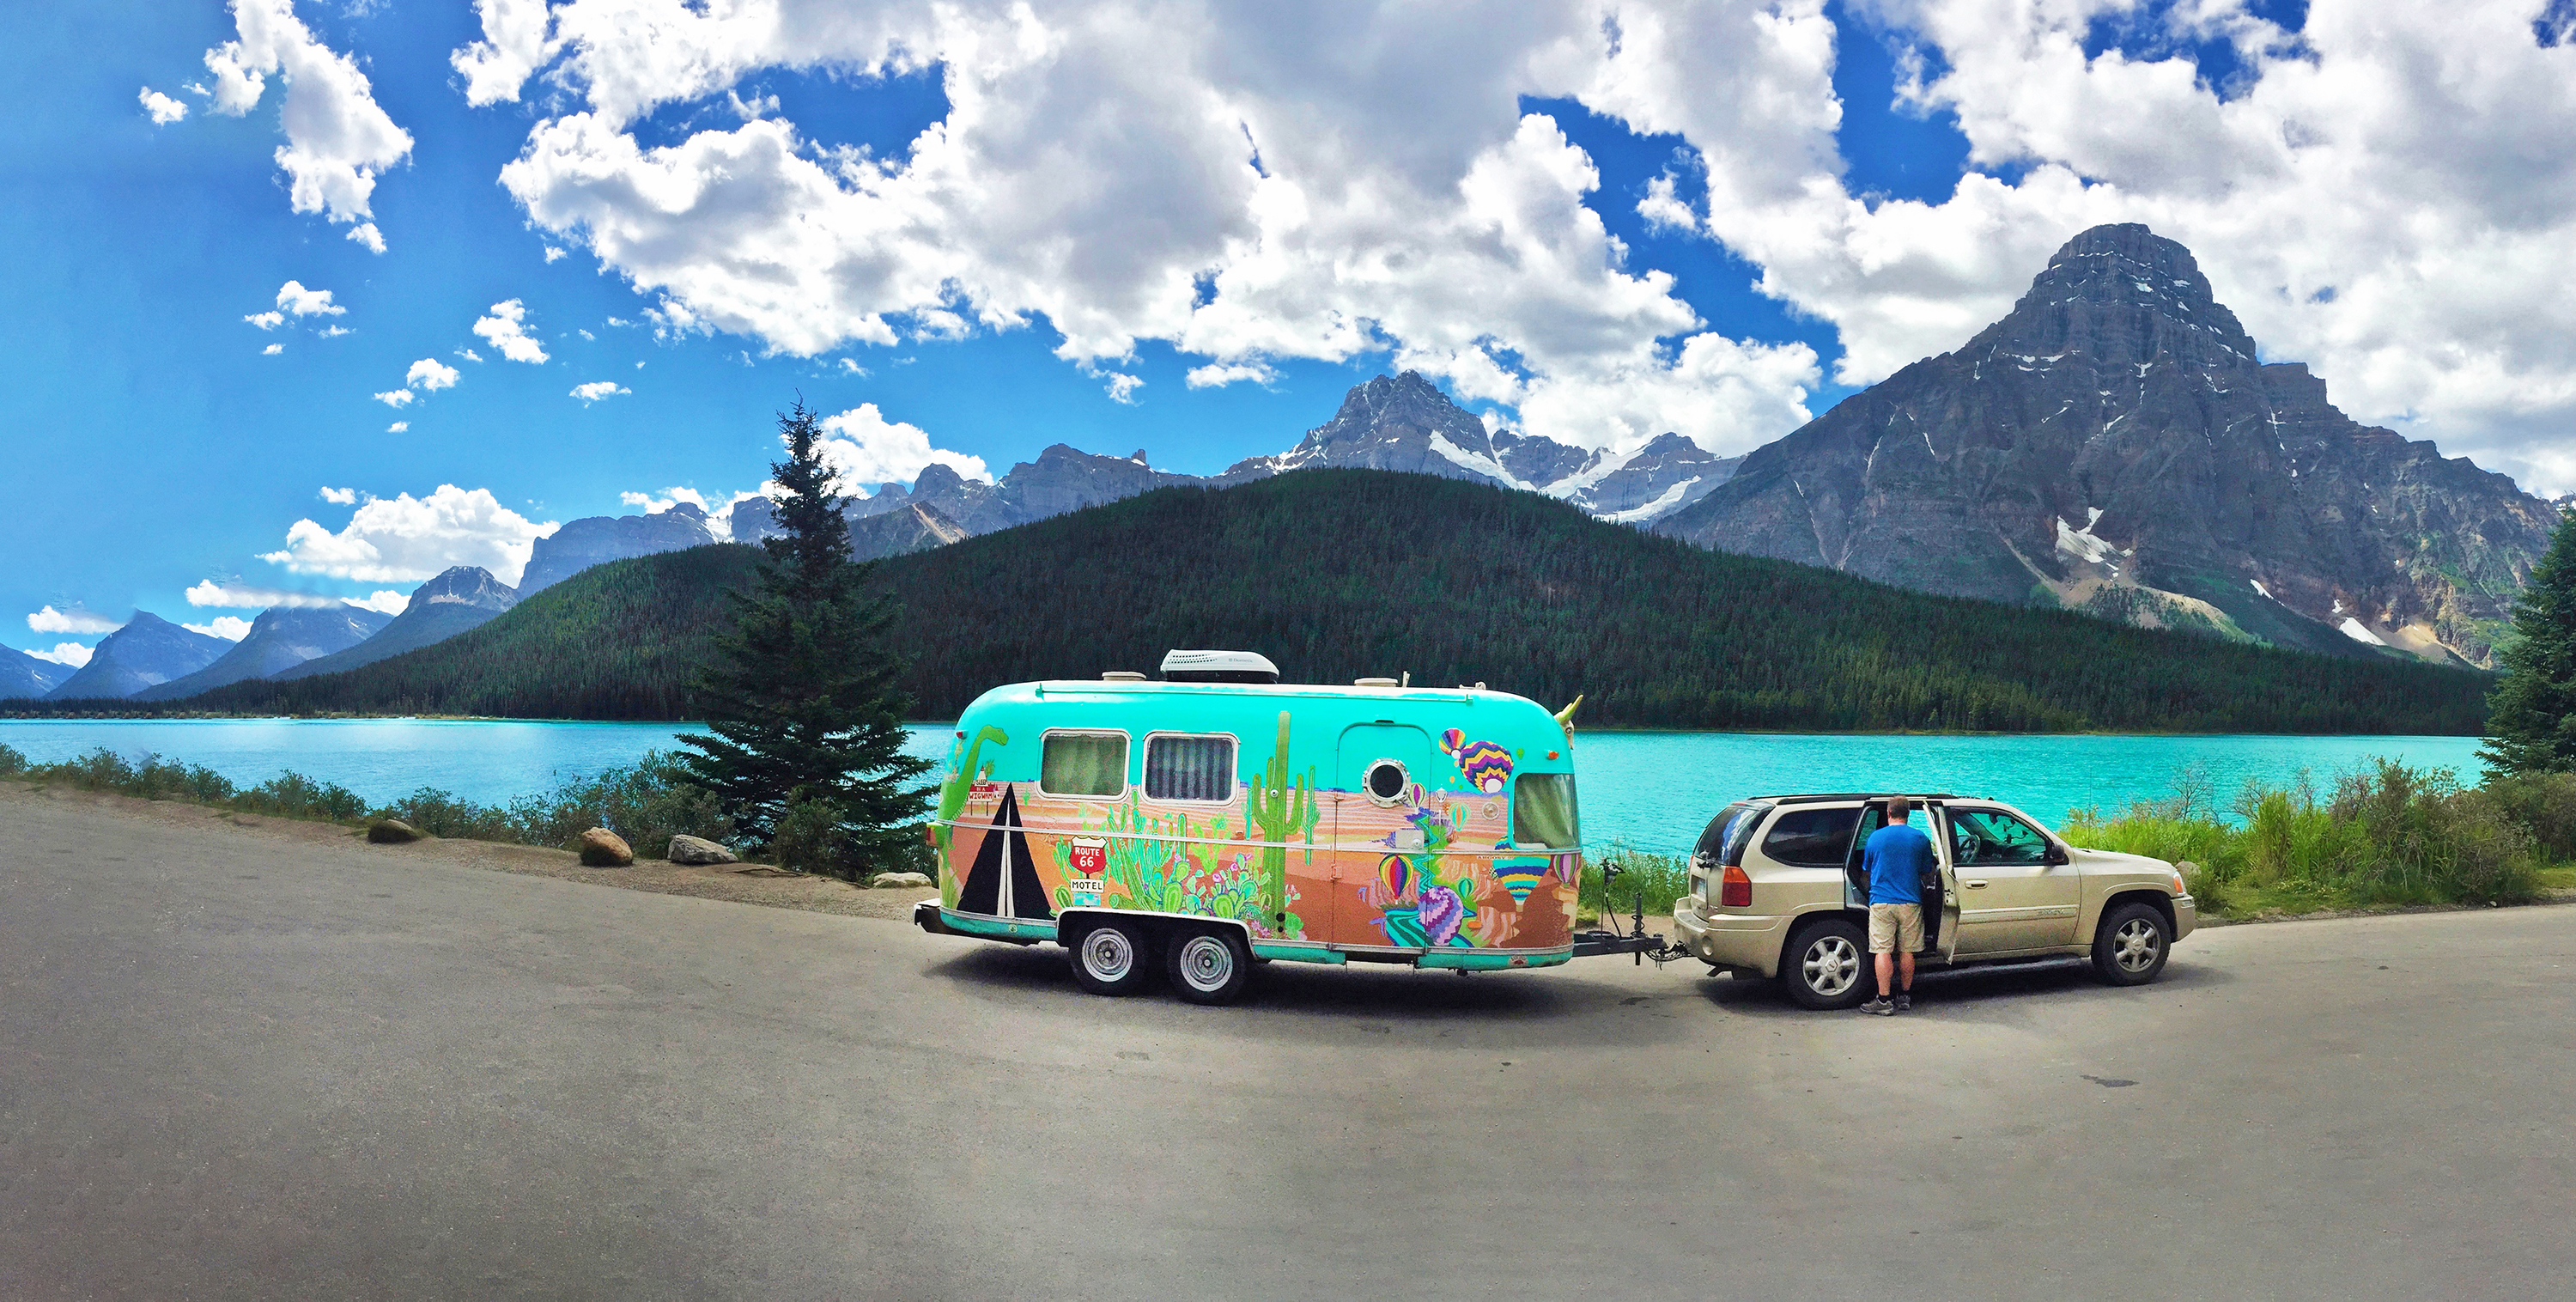 Banff and Jasper National Parks — A colorful airstream and tow vehicle parked in front of a turquoise lake.